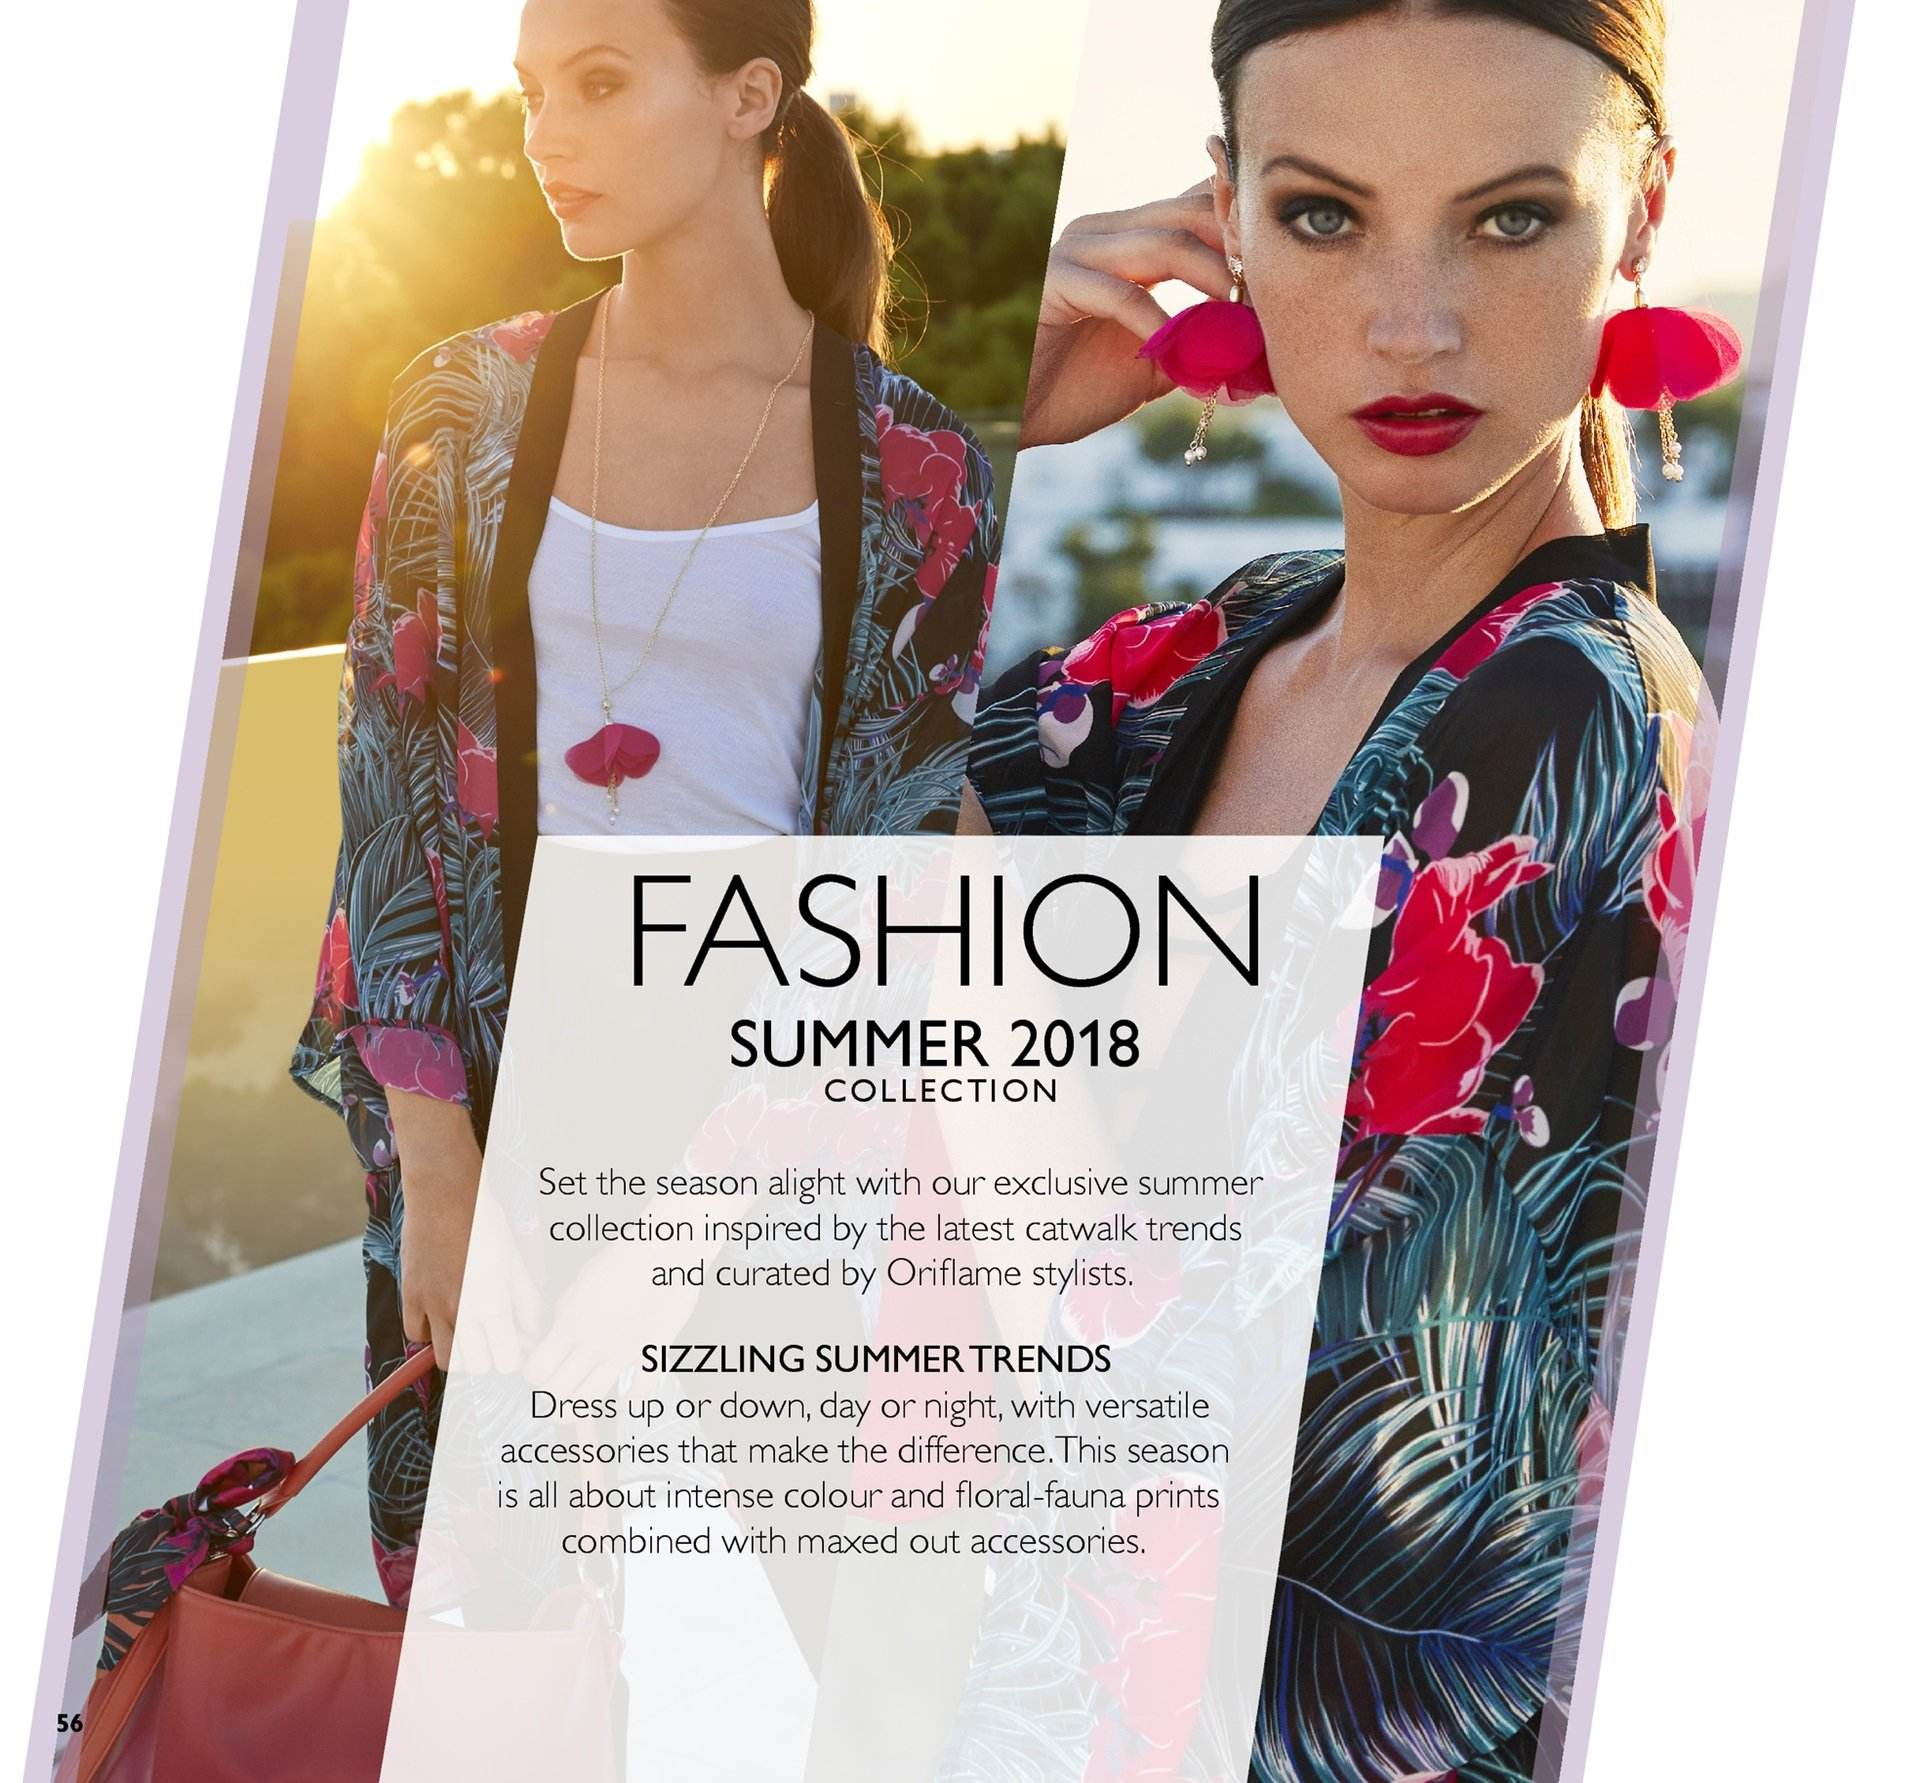 Oriflame offer  - 6.7.2018 - 26.7.2018. Page 56.